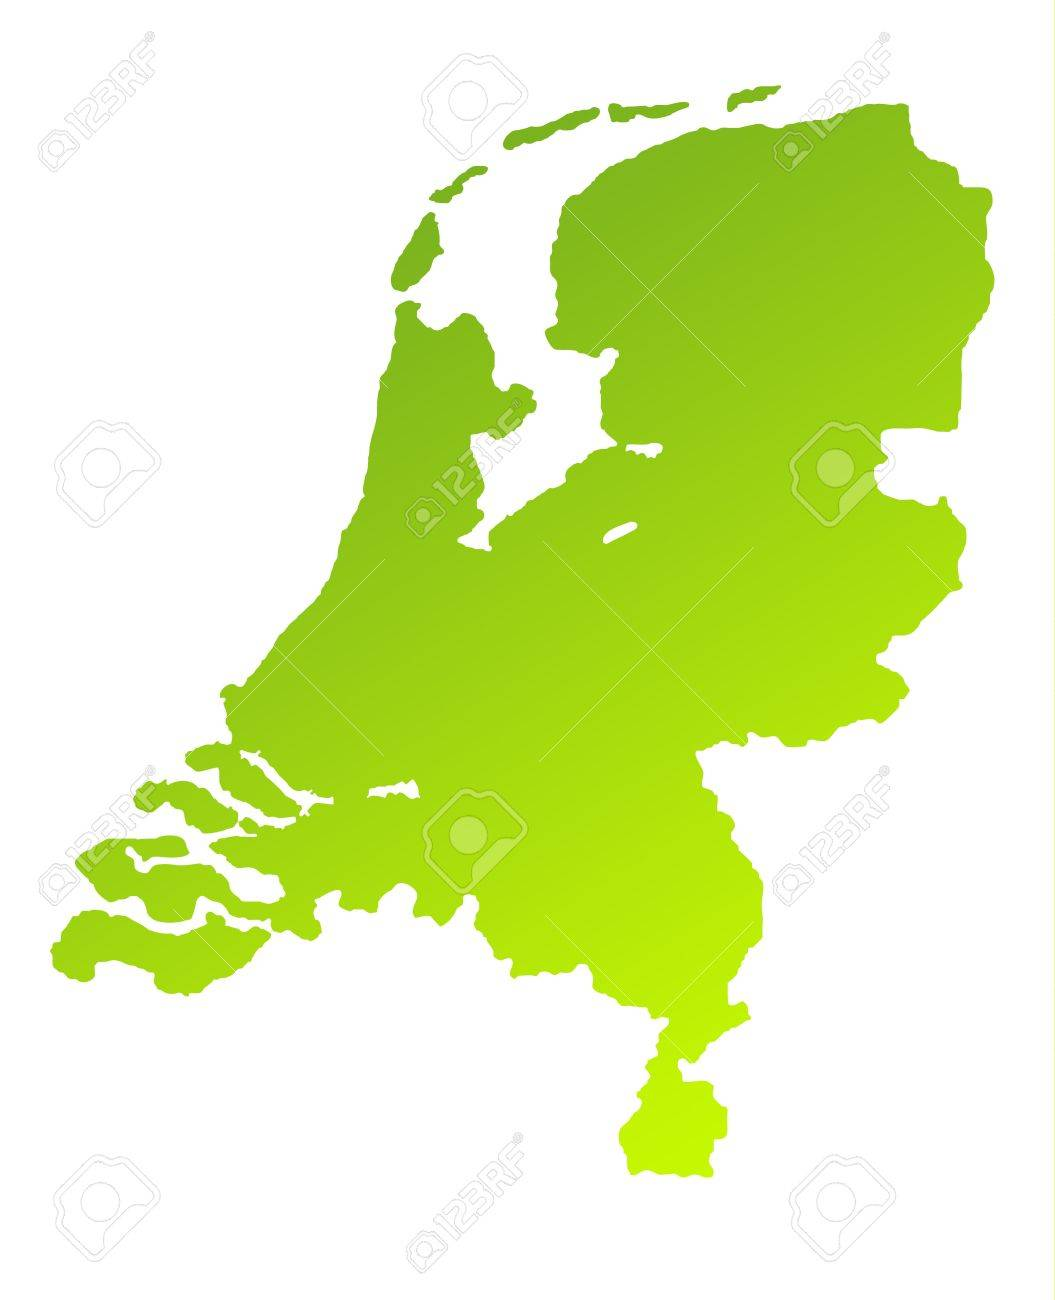 Green gradient map of Netherlands isolated on a white background. Stock Photo - 7312975